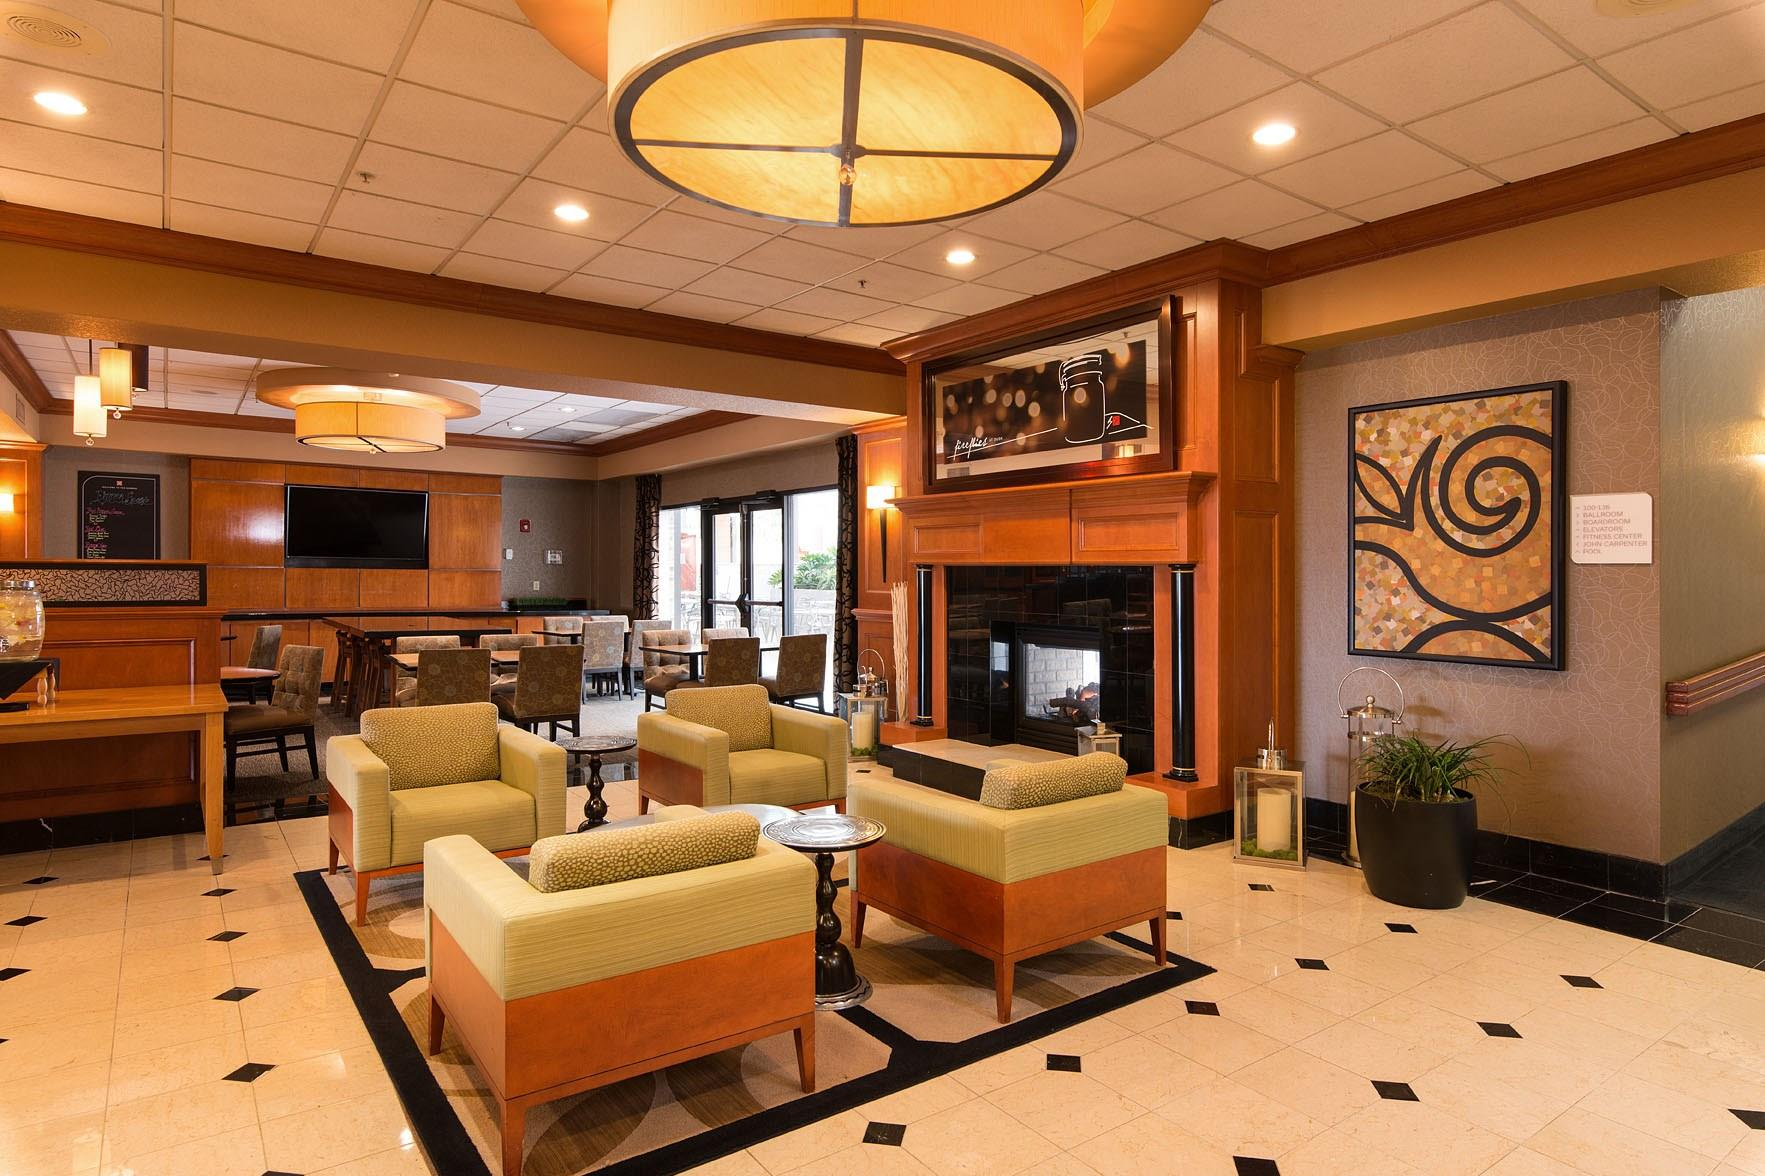 Meetings and Events at Hilton Garden Inn Las Colinas, Irving, TX, US